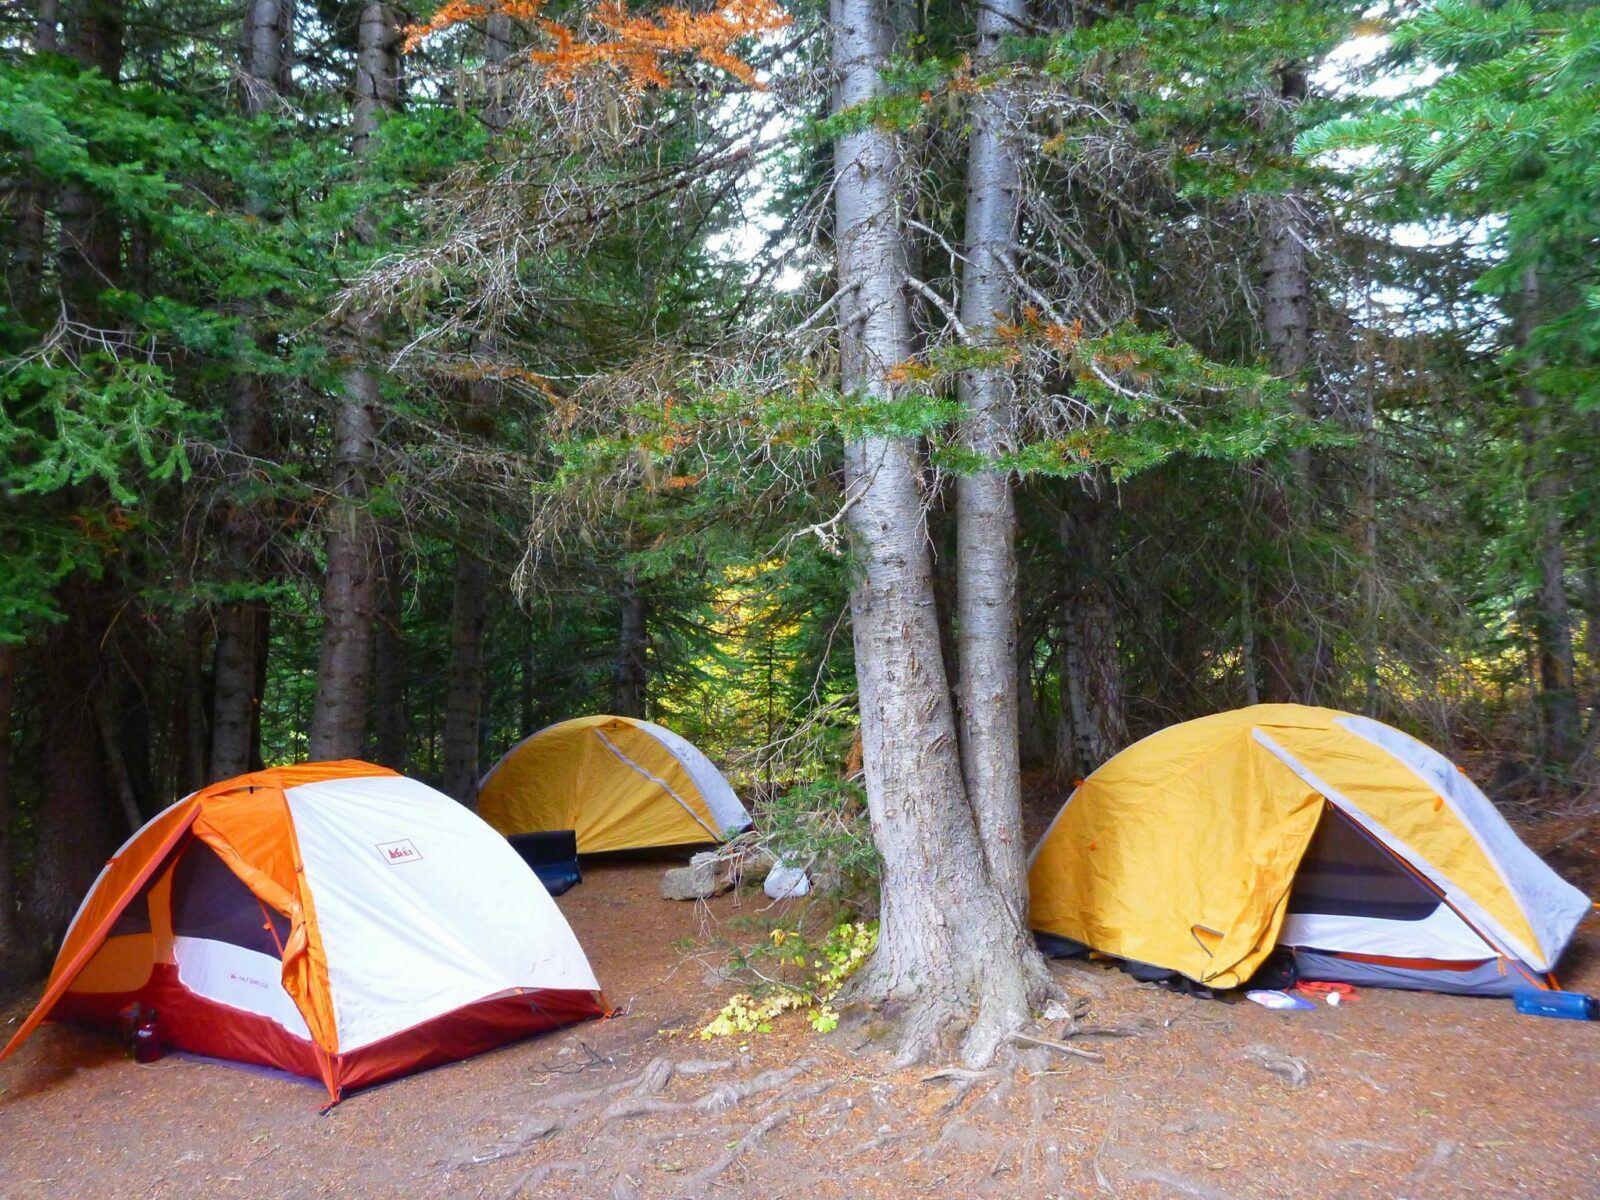 Three tents are set up in the open space between a group of evergreen trees near Lake Stuart. The tents are white, yellow and orange and have their rain flys open